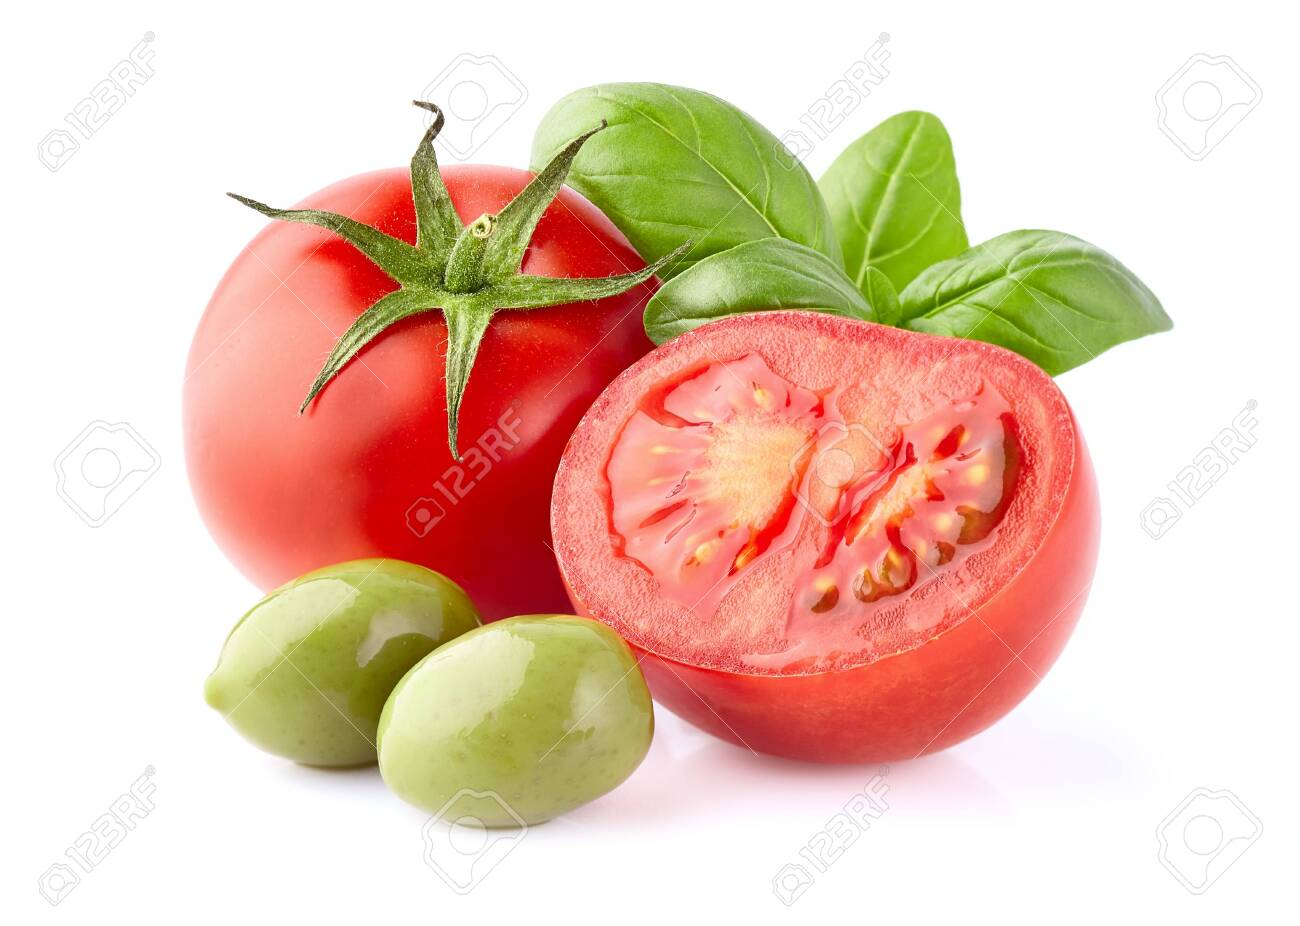 Tomatoes with olives and basil leaves on white background - 144916660